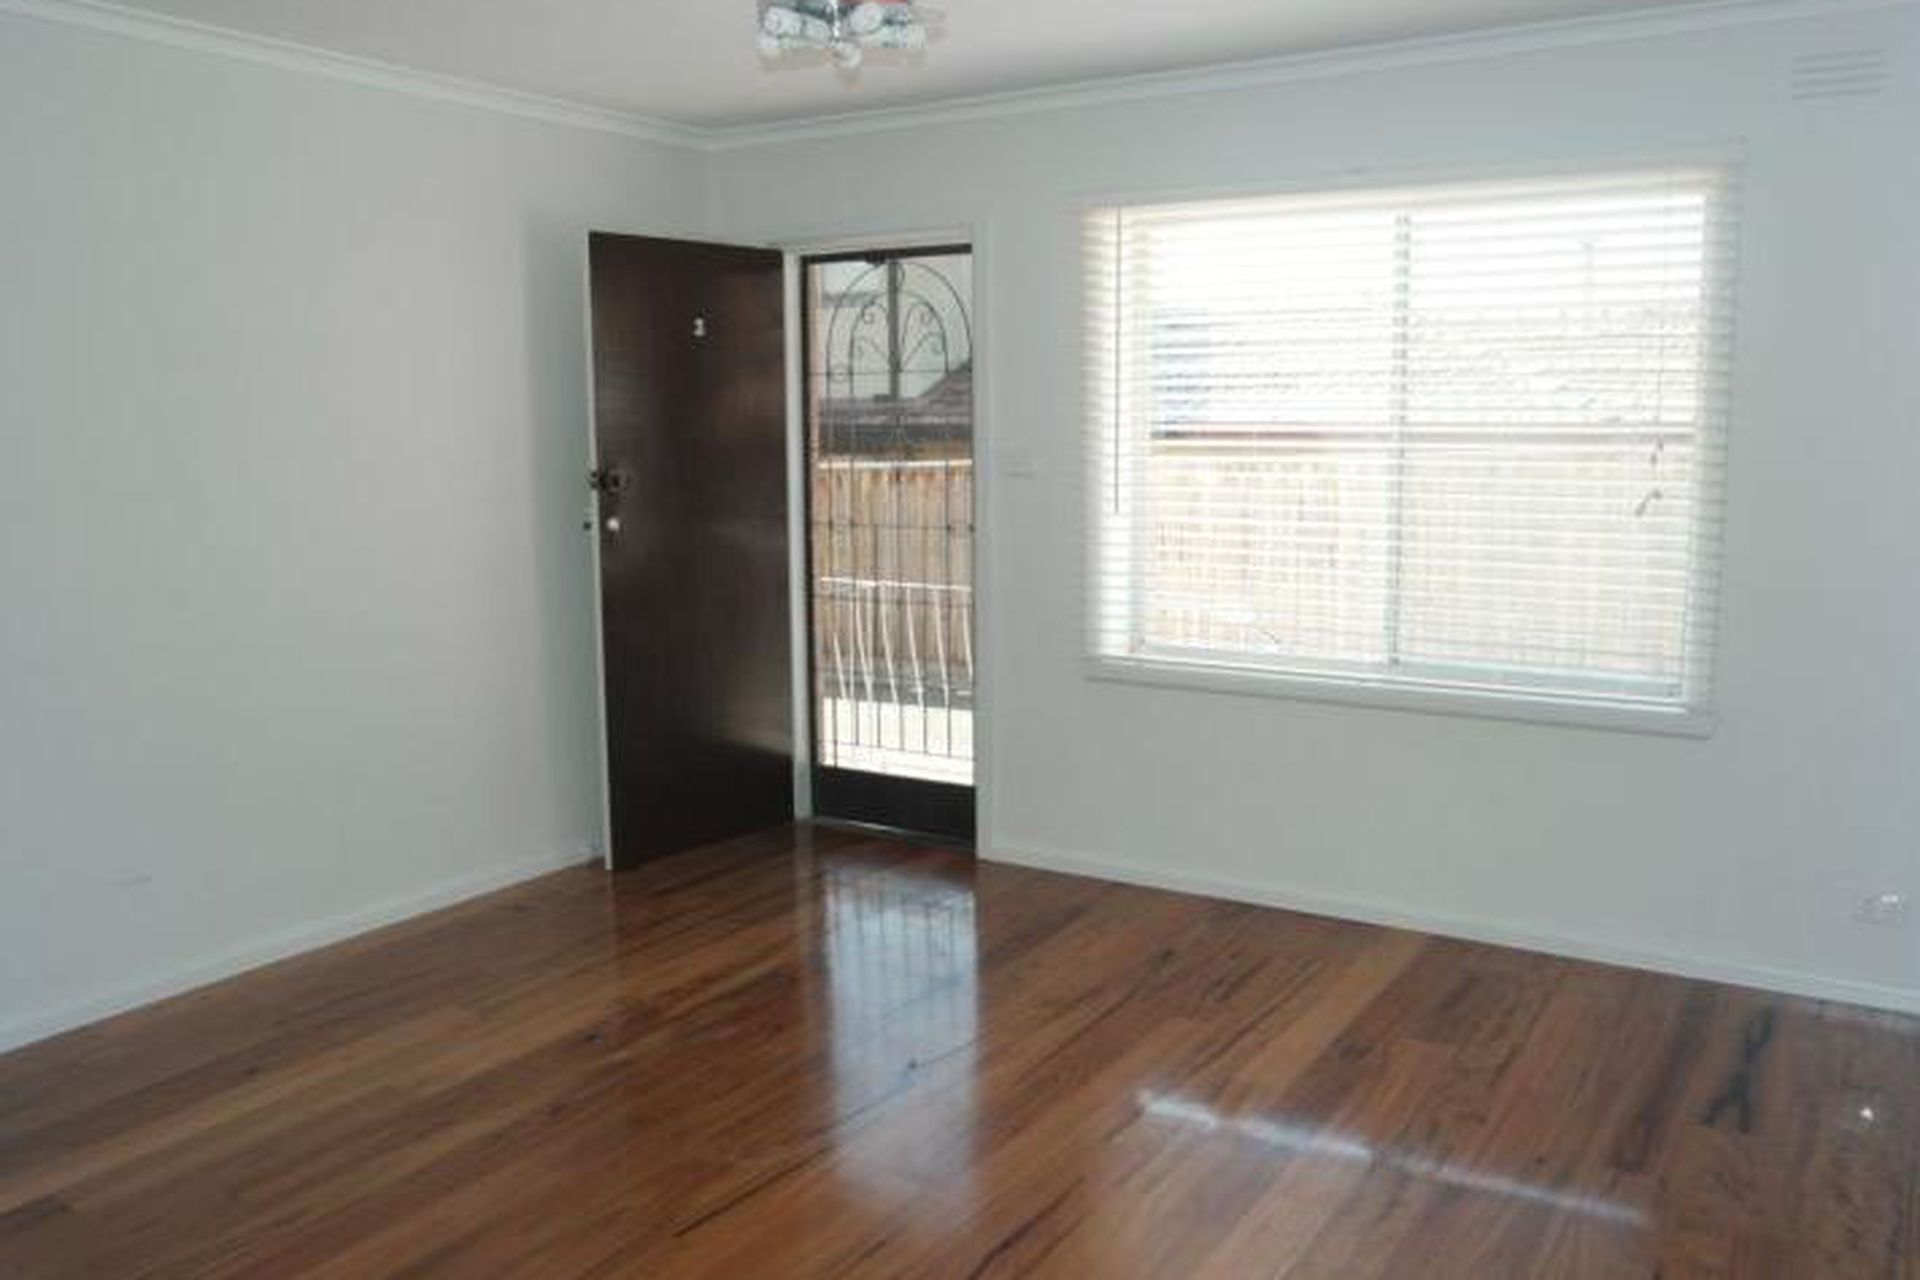 3 / 11 Tweedside Street, Essendon